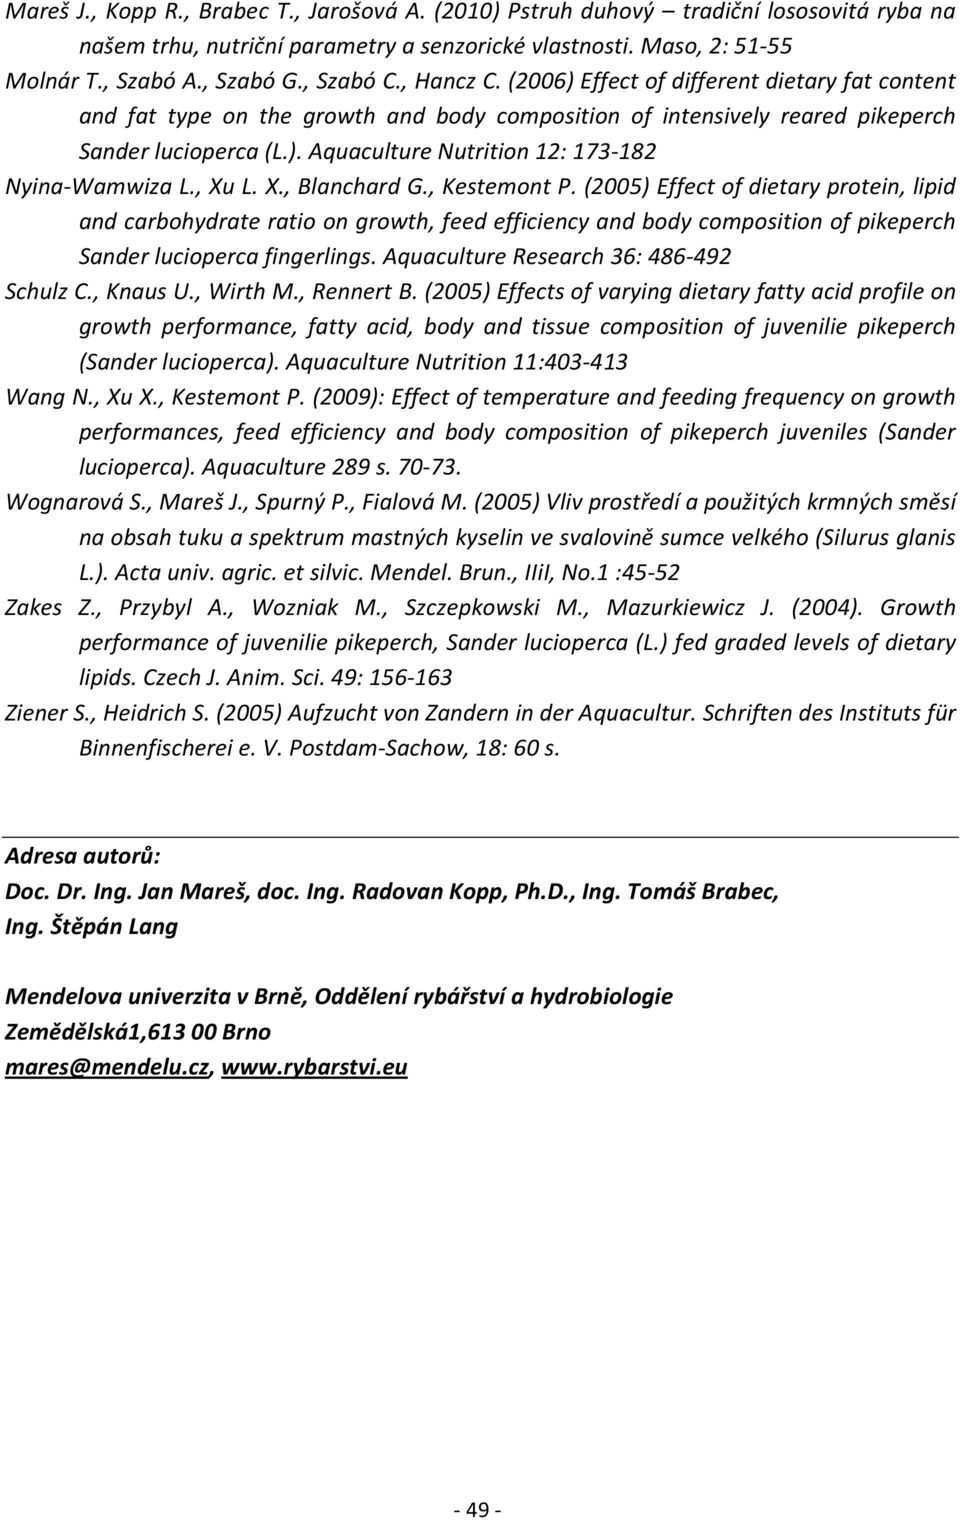 , Xu L. X., Blanchard G., Kestemont P. (2005) Effect of dietary protein, lipid and carbohydrate ratio on growth, feed efficiency and body composition of pikeperch Sander lucioperca fingerlings.